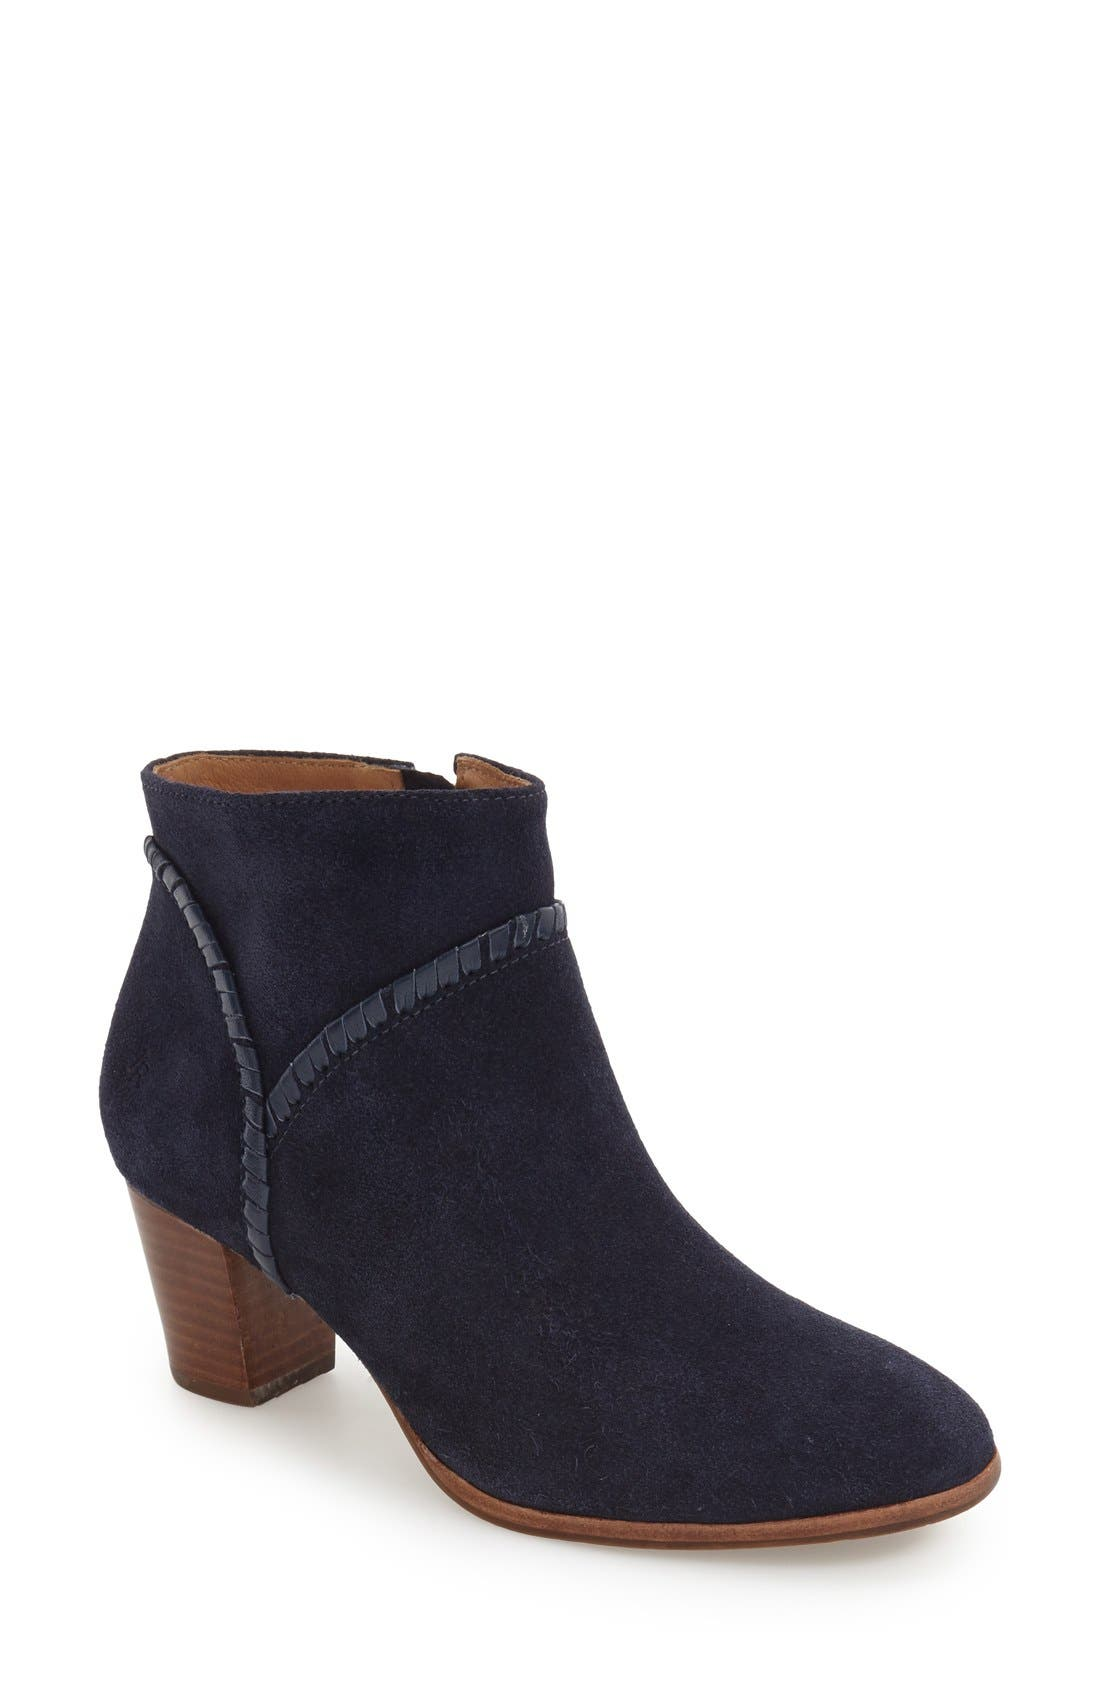 'Chandler' Bootie,                             Main thumbnail 1, color,                             Midnight Suede